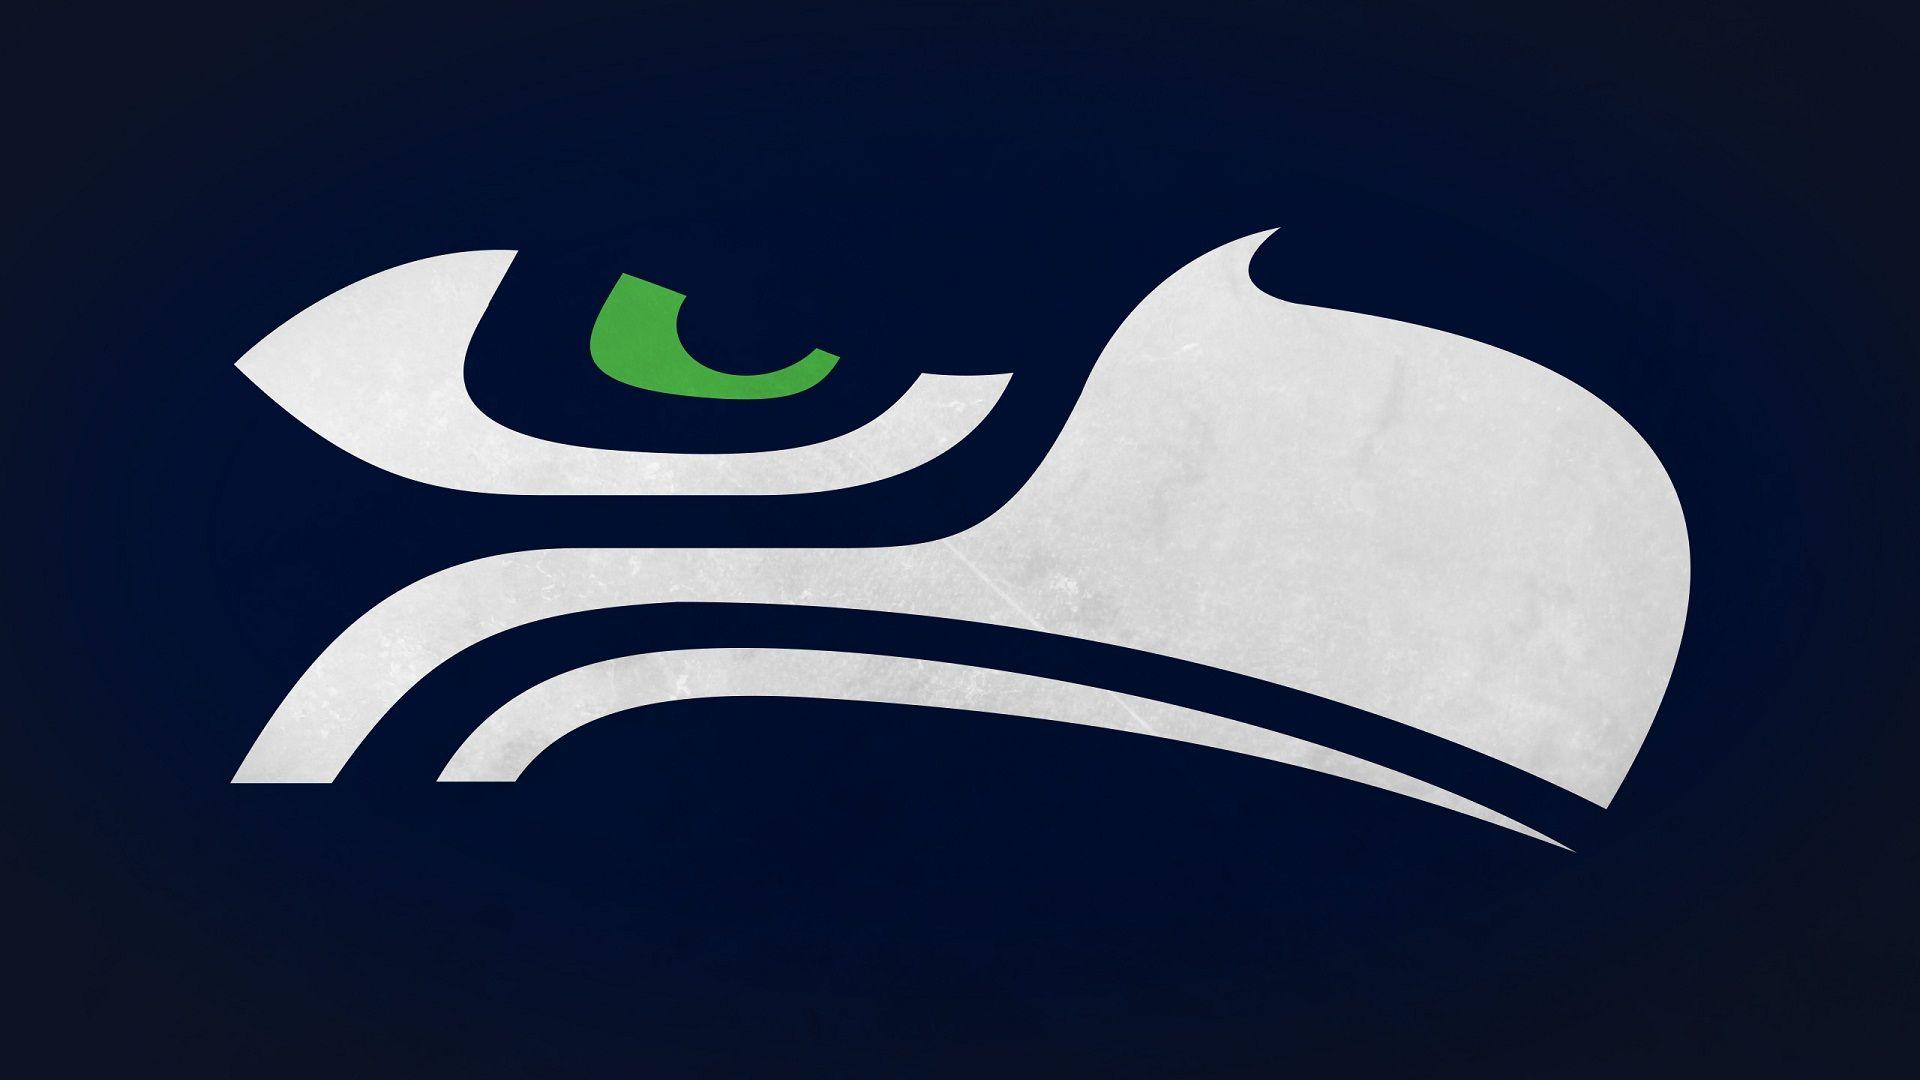 Seahawks Wallpapers For Ipad HD